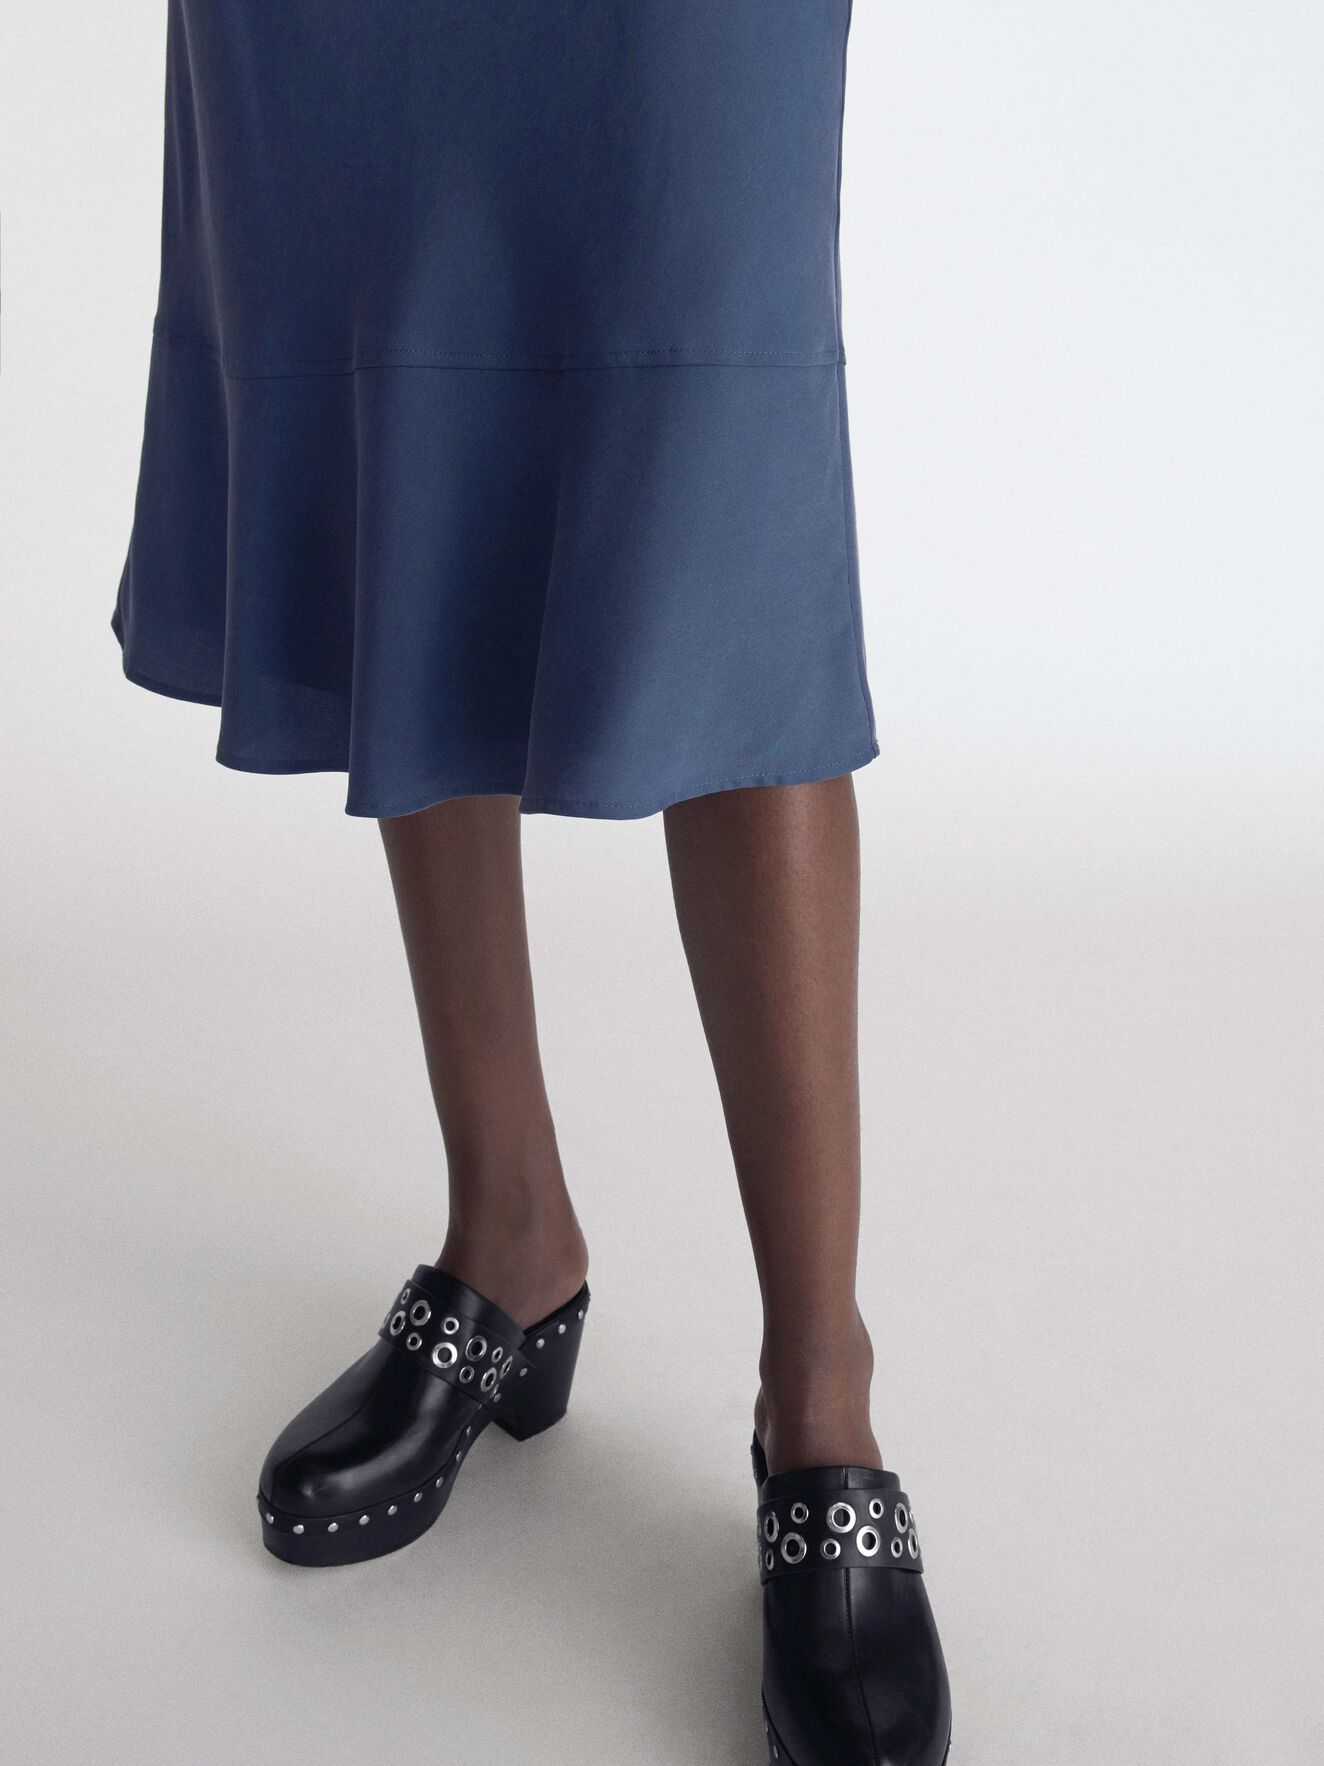 Seiko Skirt in Metal Blue from Tiger of Sweden